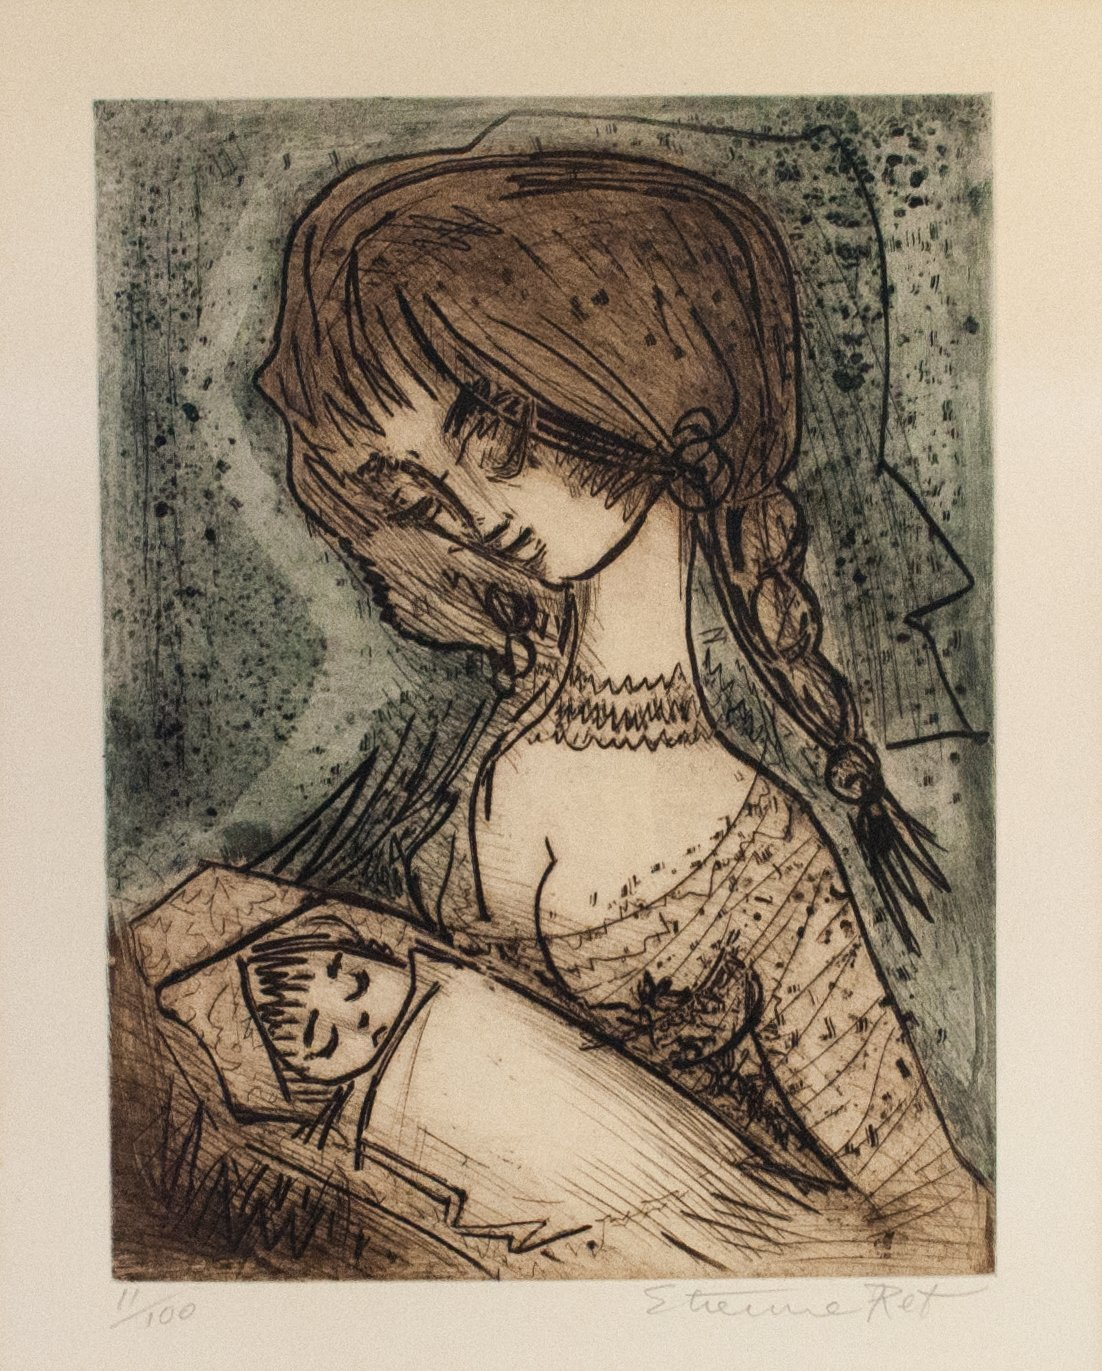 Etienne Ret - Mother and Child - Etching - c 1970s